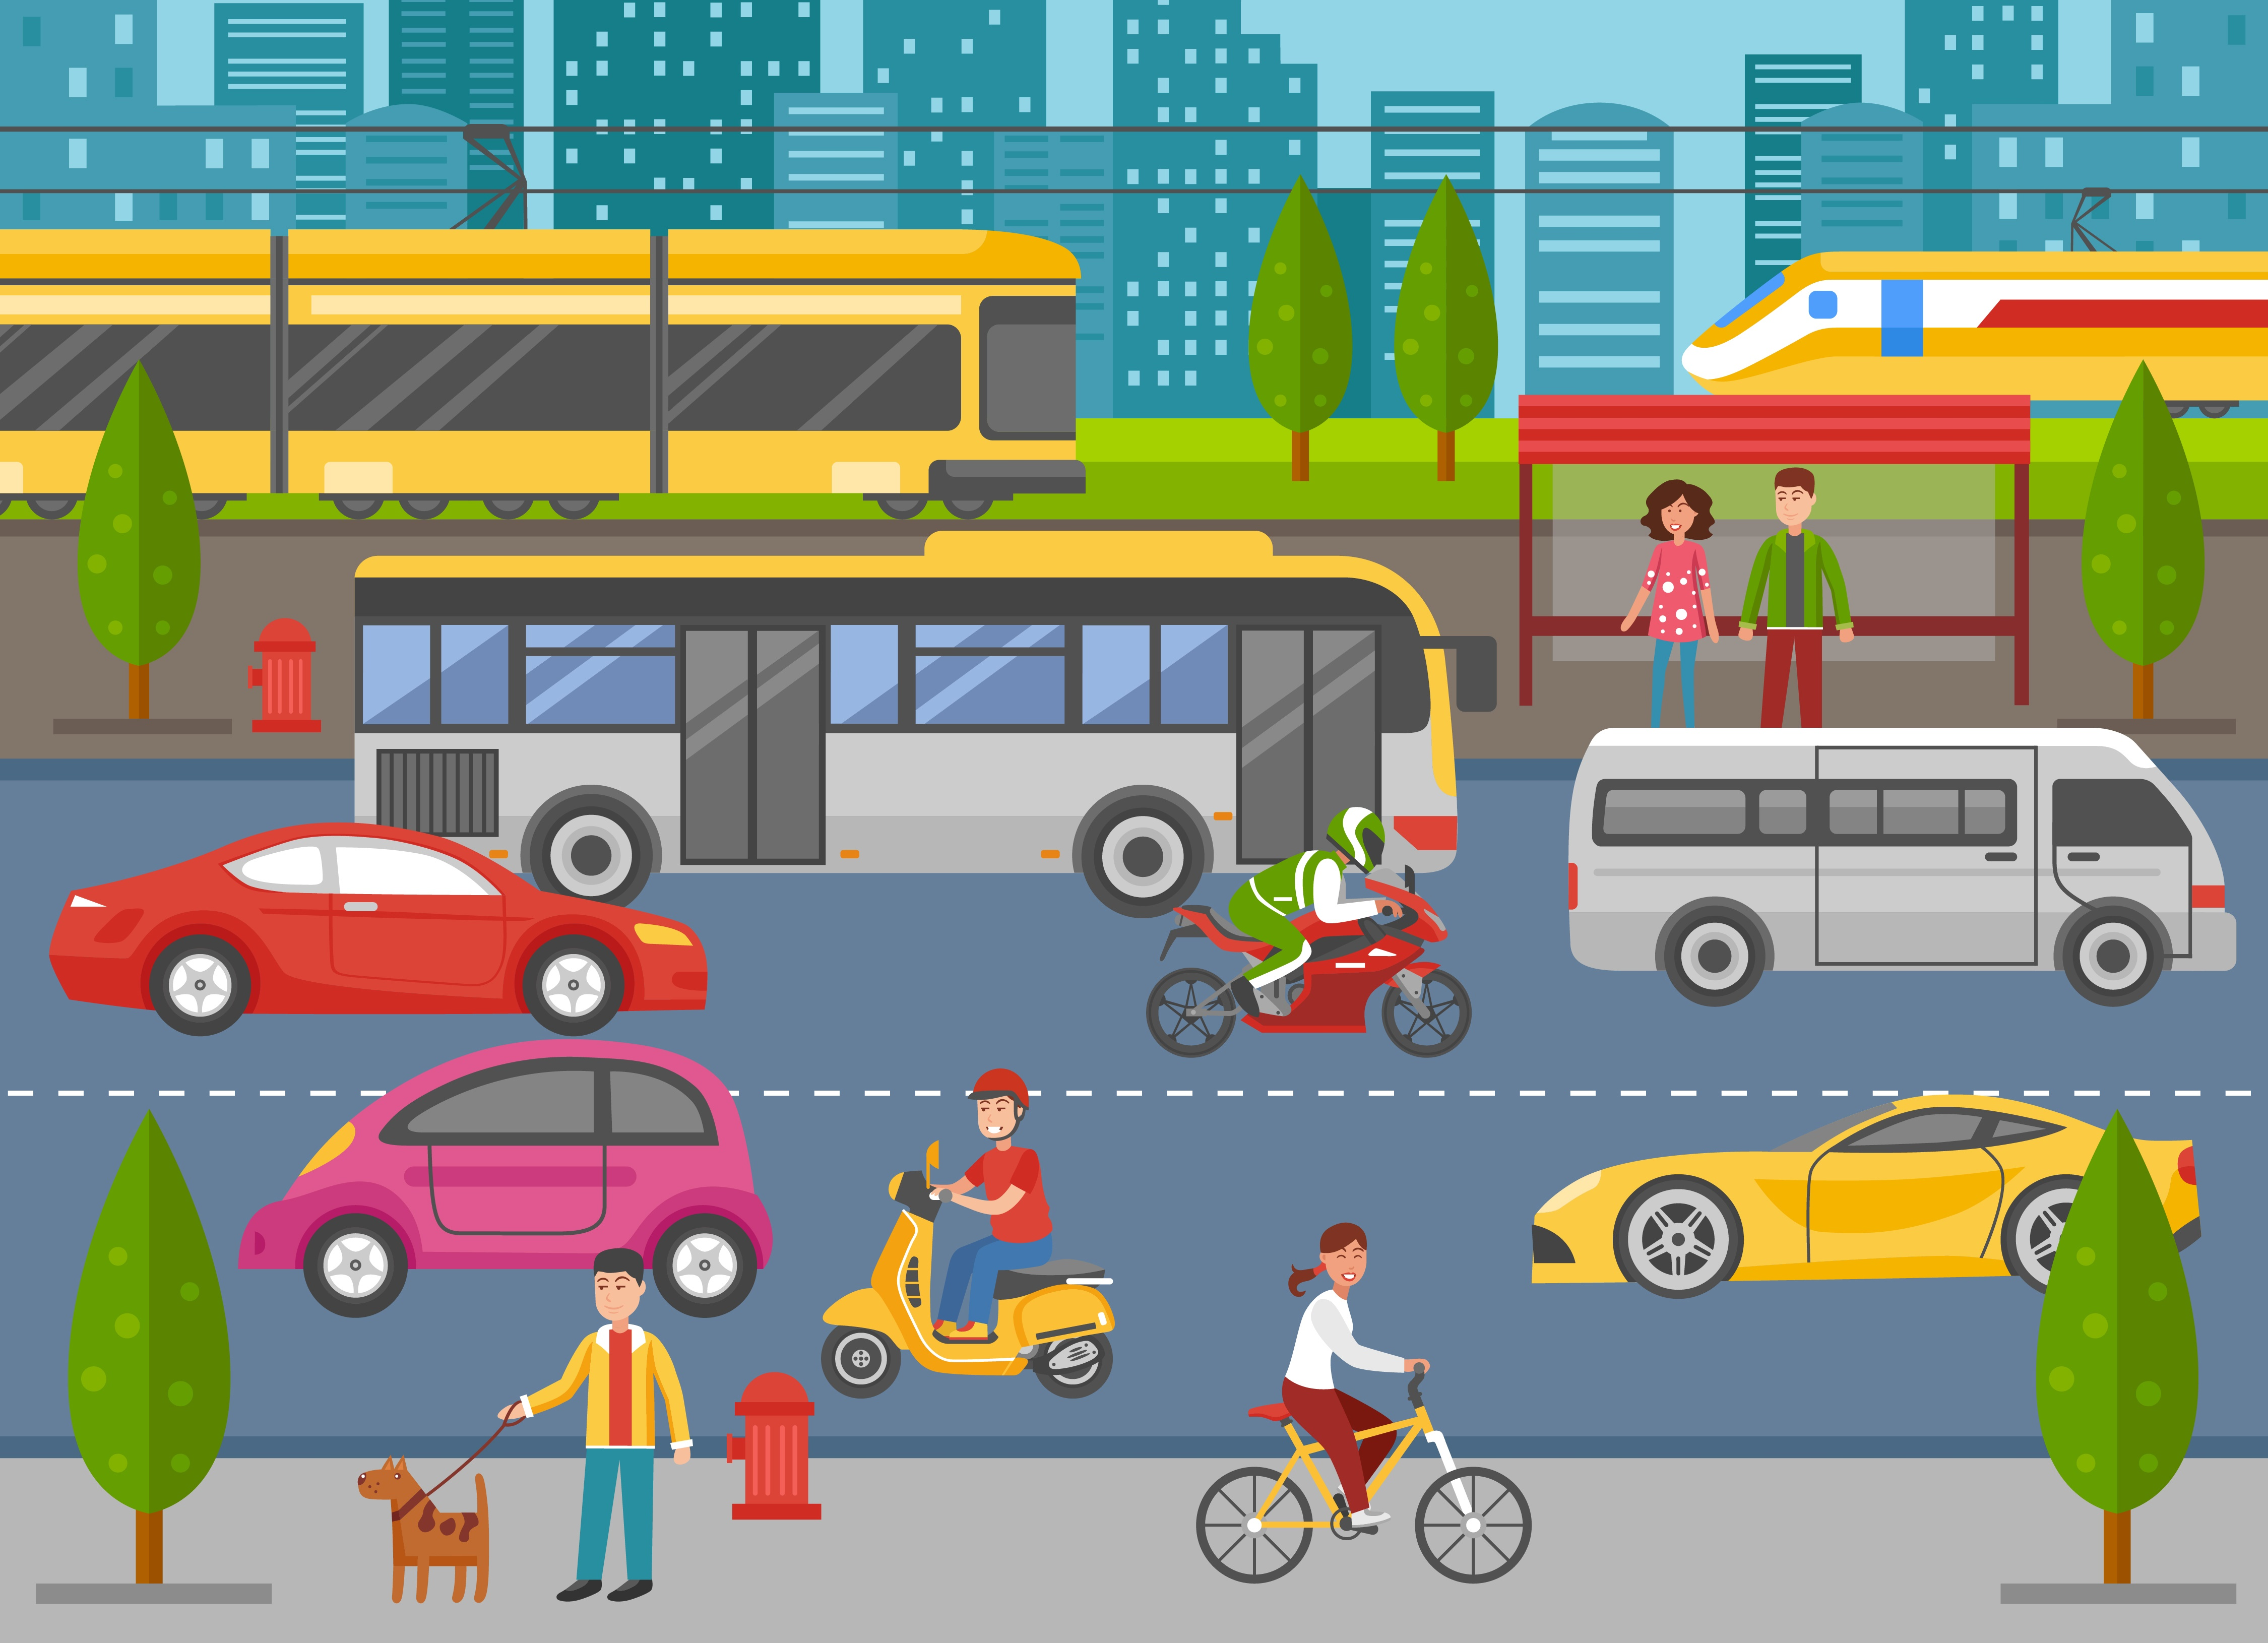 028 Smartcitiesmobility Short Essay On Transportation Outstanding My Favourite Means Of Transport Public Water Full